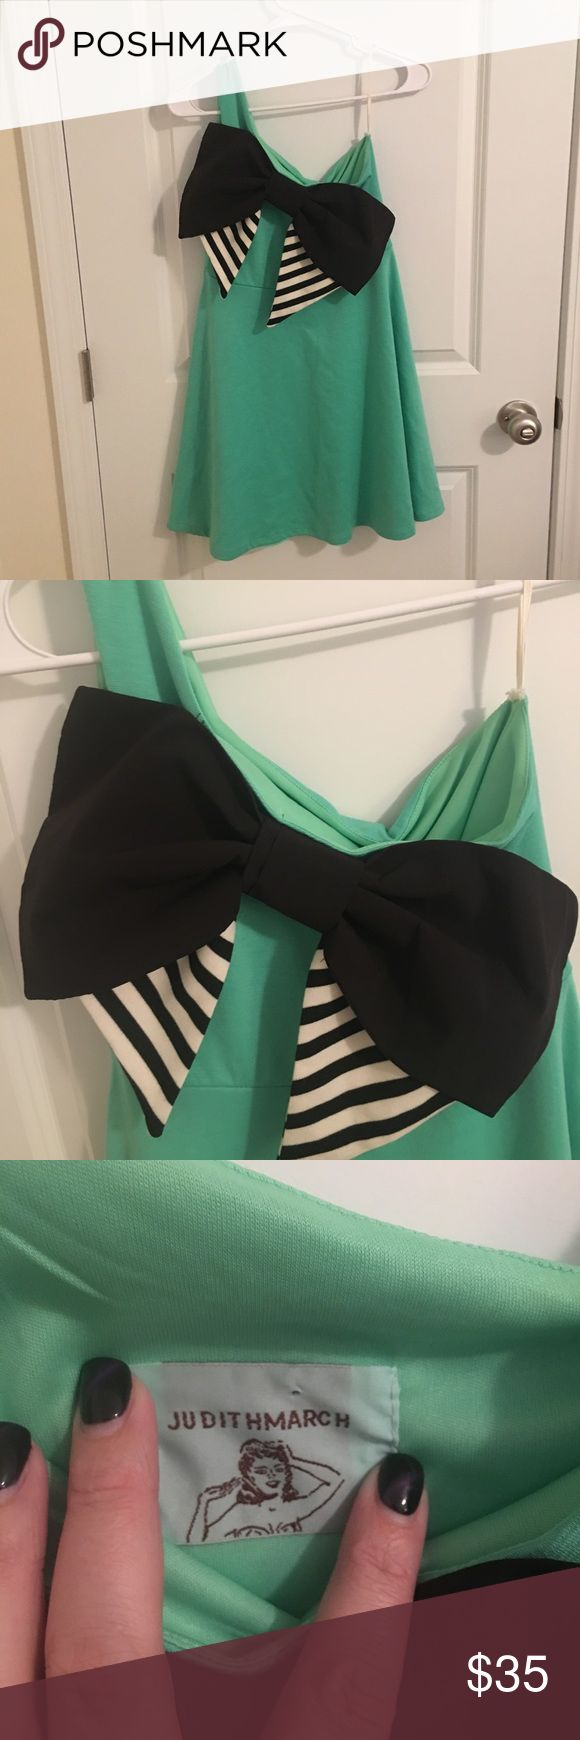 Judith March One Shoulder Dress Judith Match one shoulder dress. In a mint green with black and white signature bow. Judith March Dresses One Shoulder